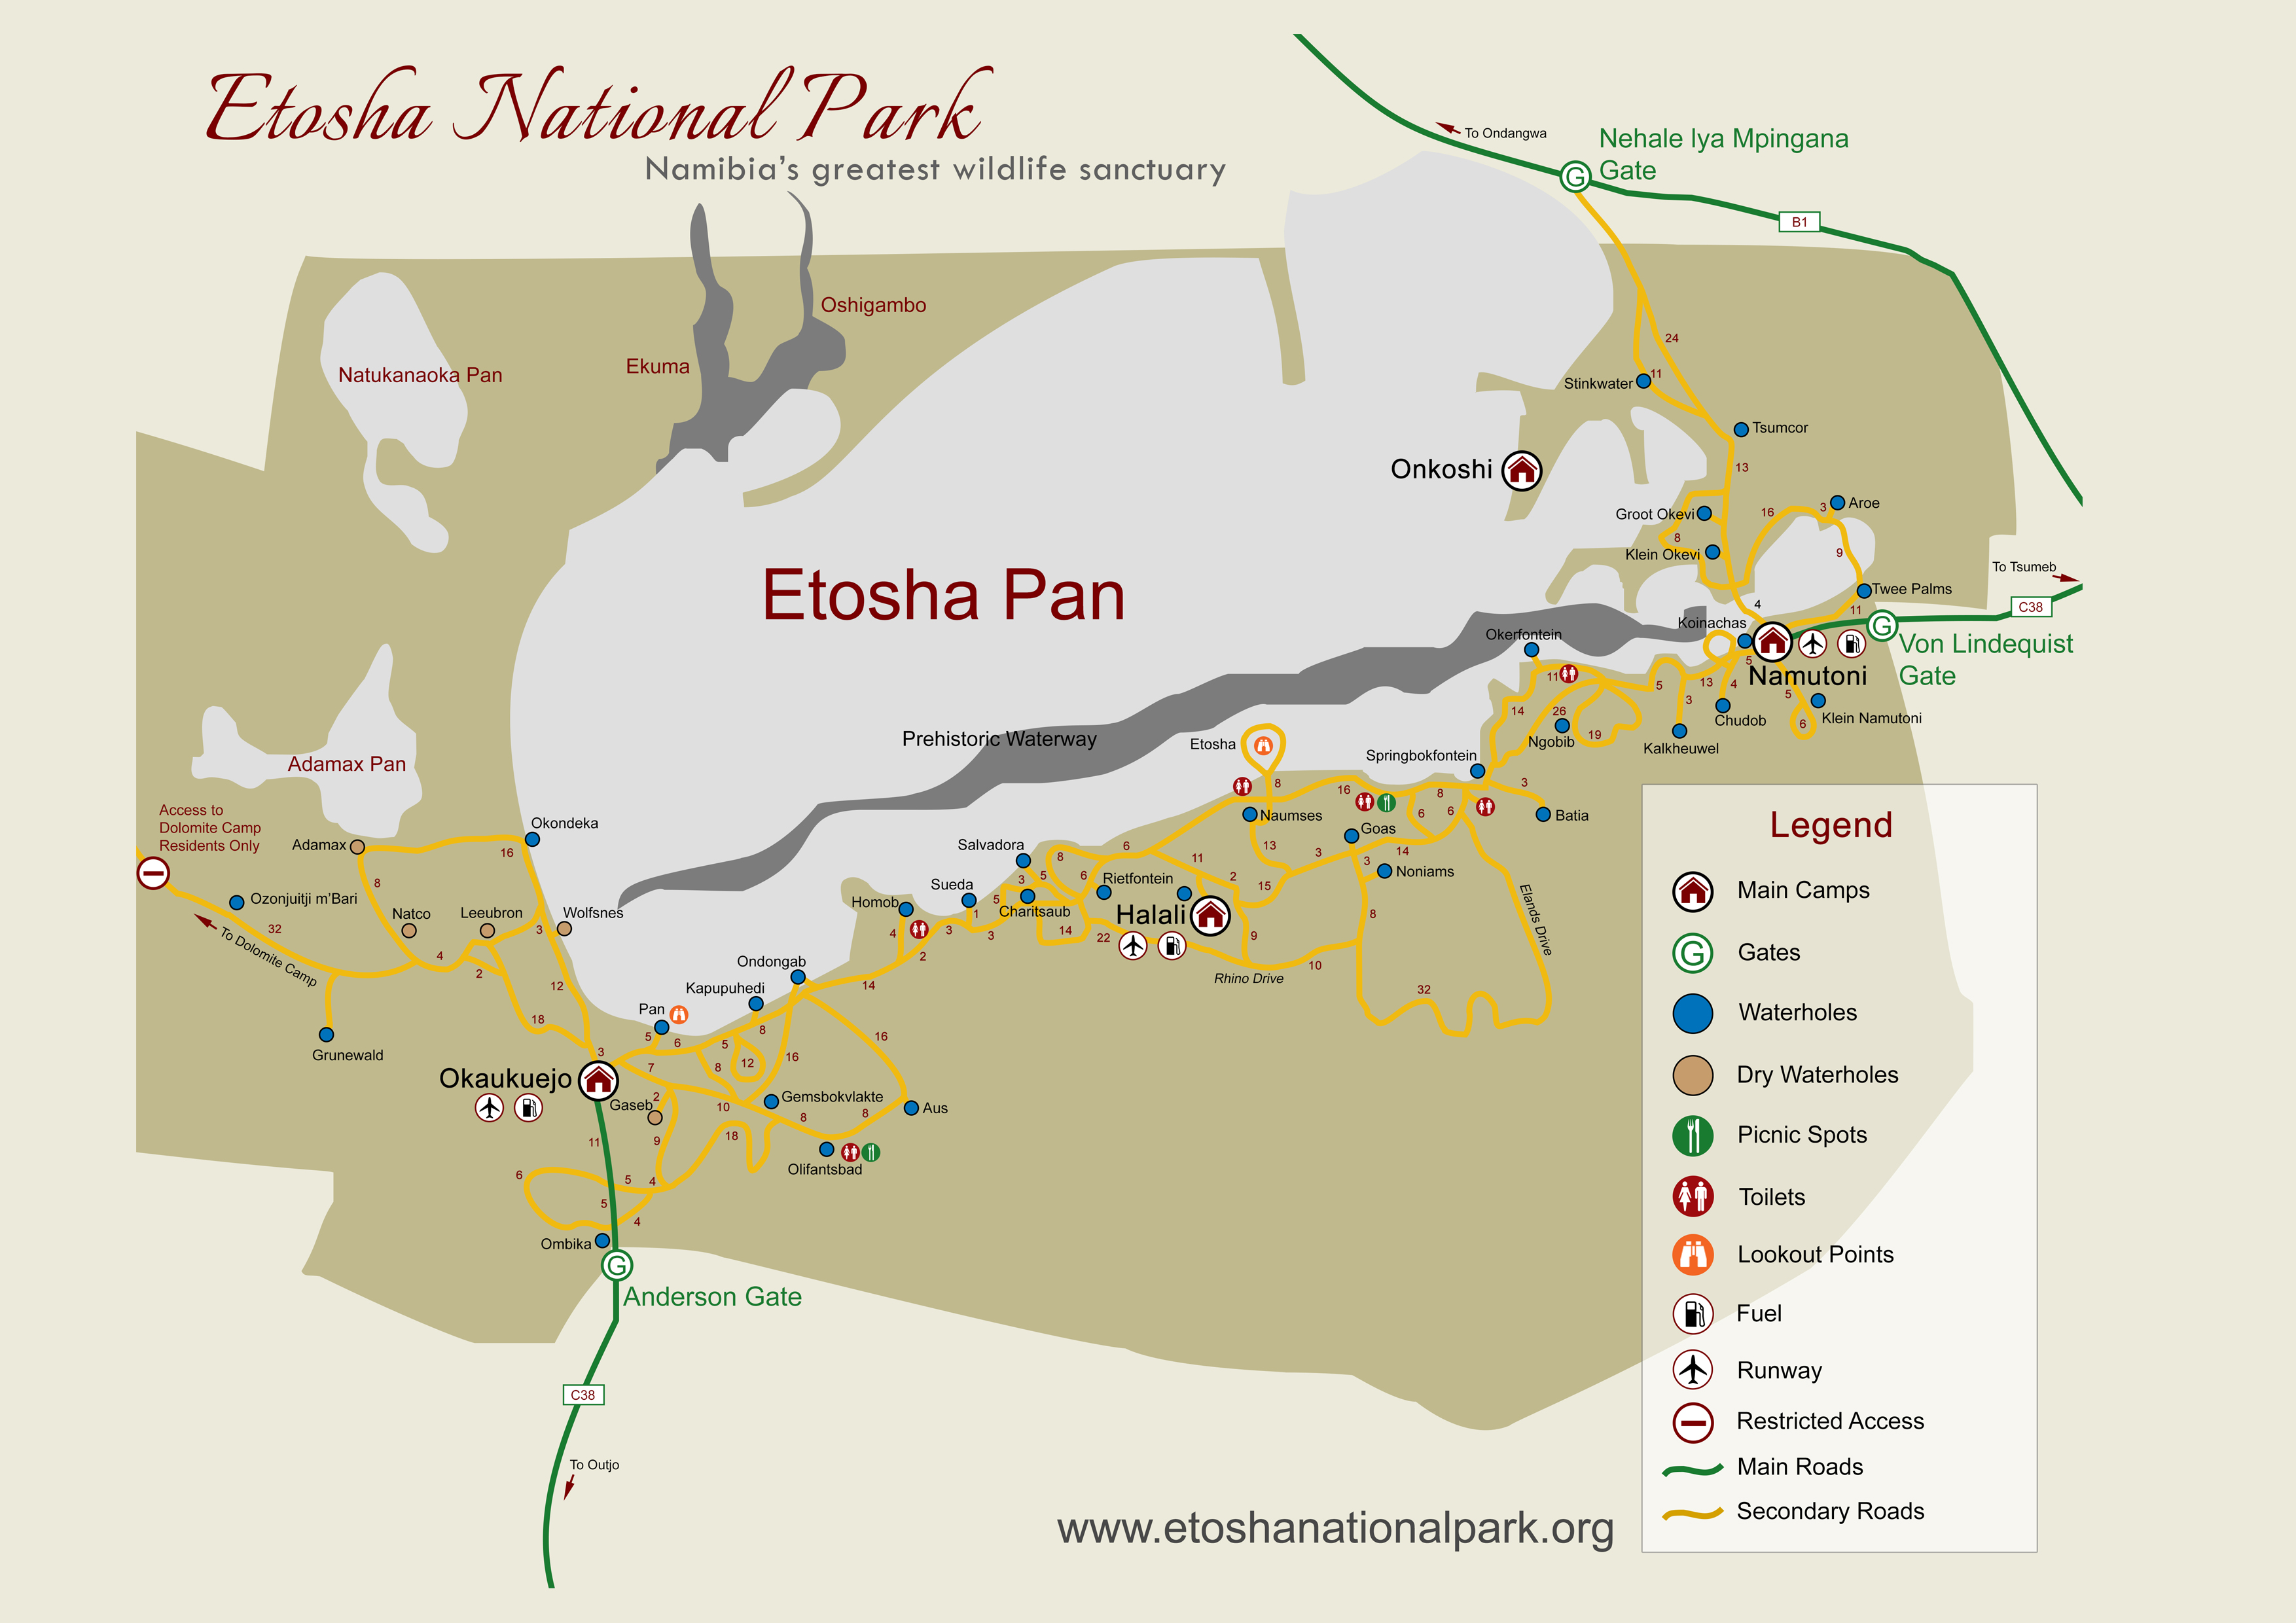 Etosha National Park Map & Distances on map of kerala, map clock, map region, map of all montana towns, map design, map maps, map orientation, map of texas with mileage, map my run, map history, map travel, map making, map longitude, map online, map key legend, map date, map language, map of texas speed limits, map of irish hills michigan, map state,